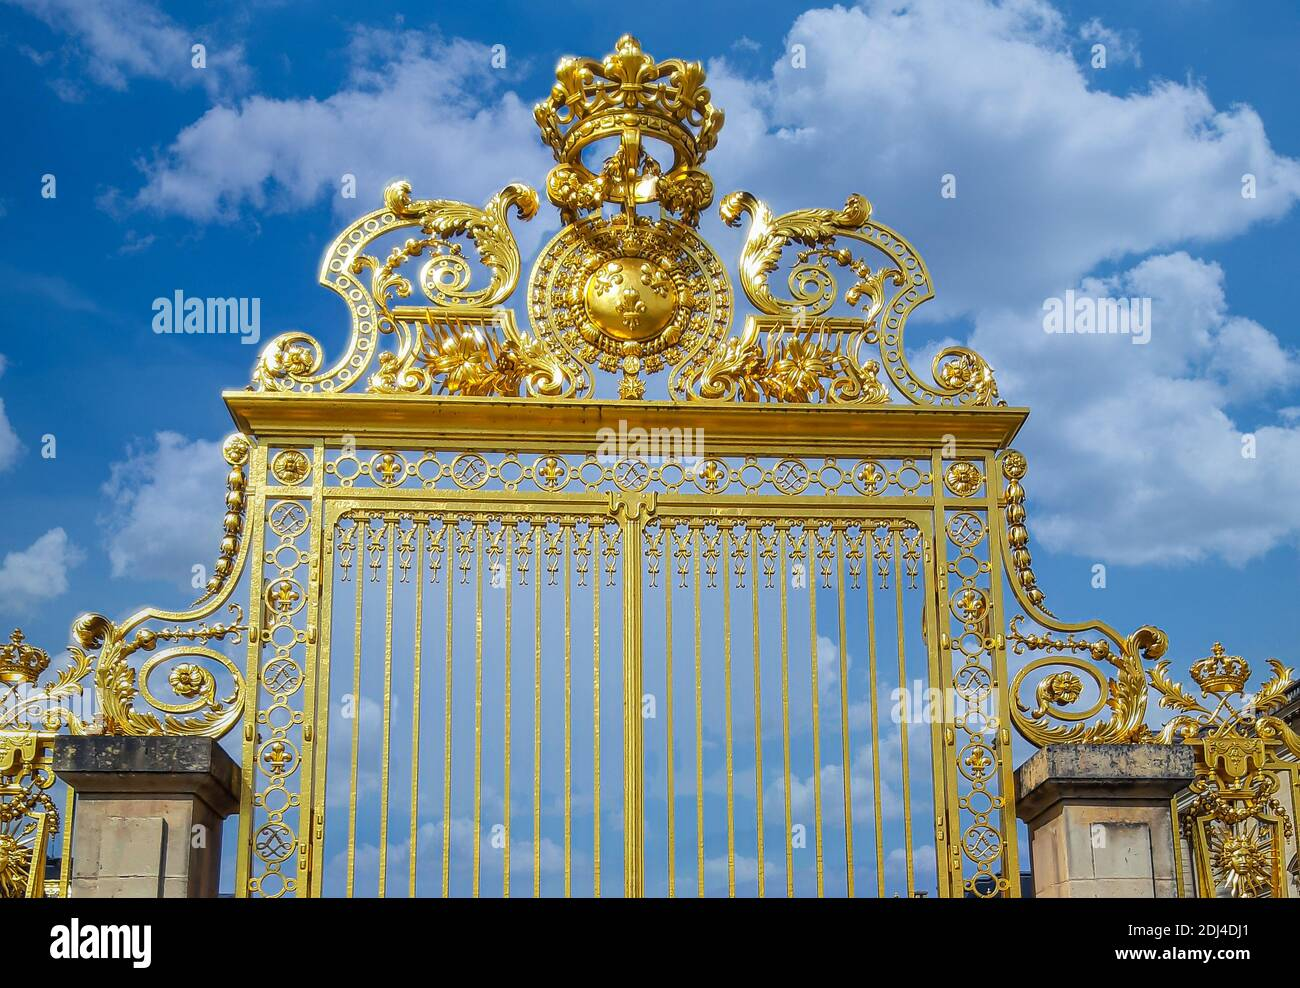 The Palace of Versailles or simply Versailles, is a royal château in Versailles in the Île-de-France Stock Photo